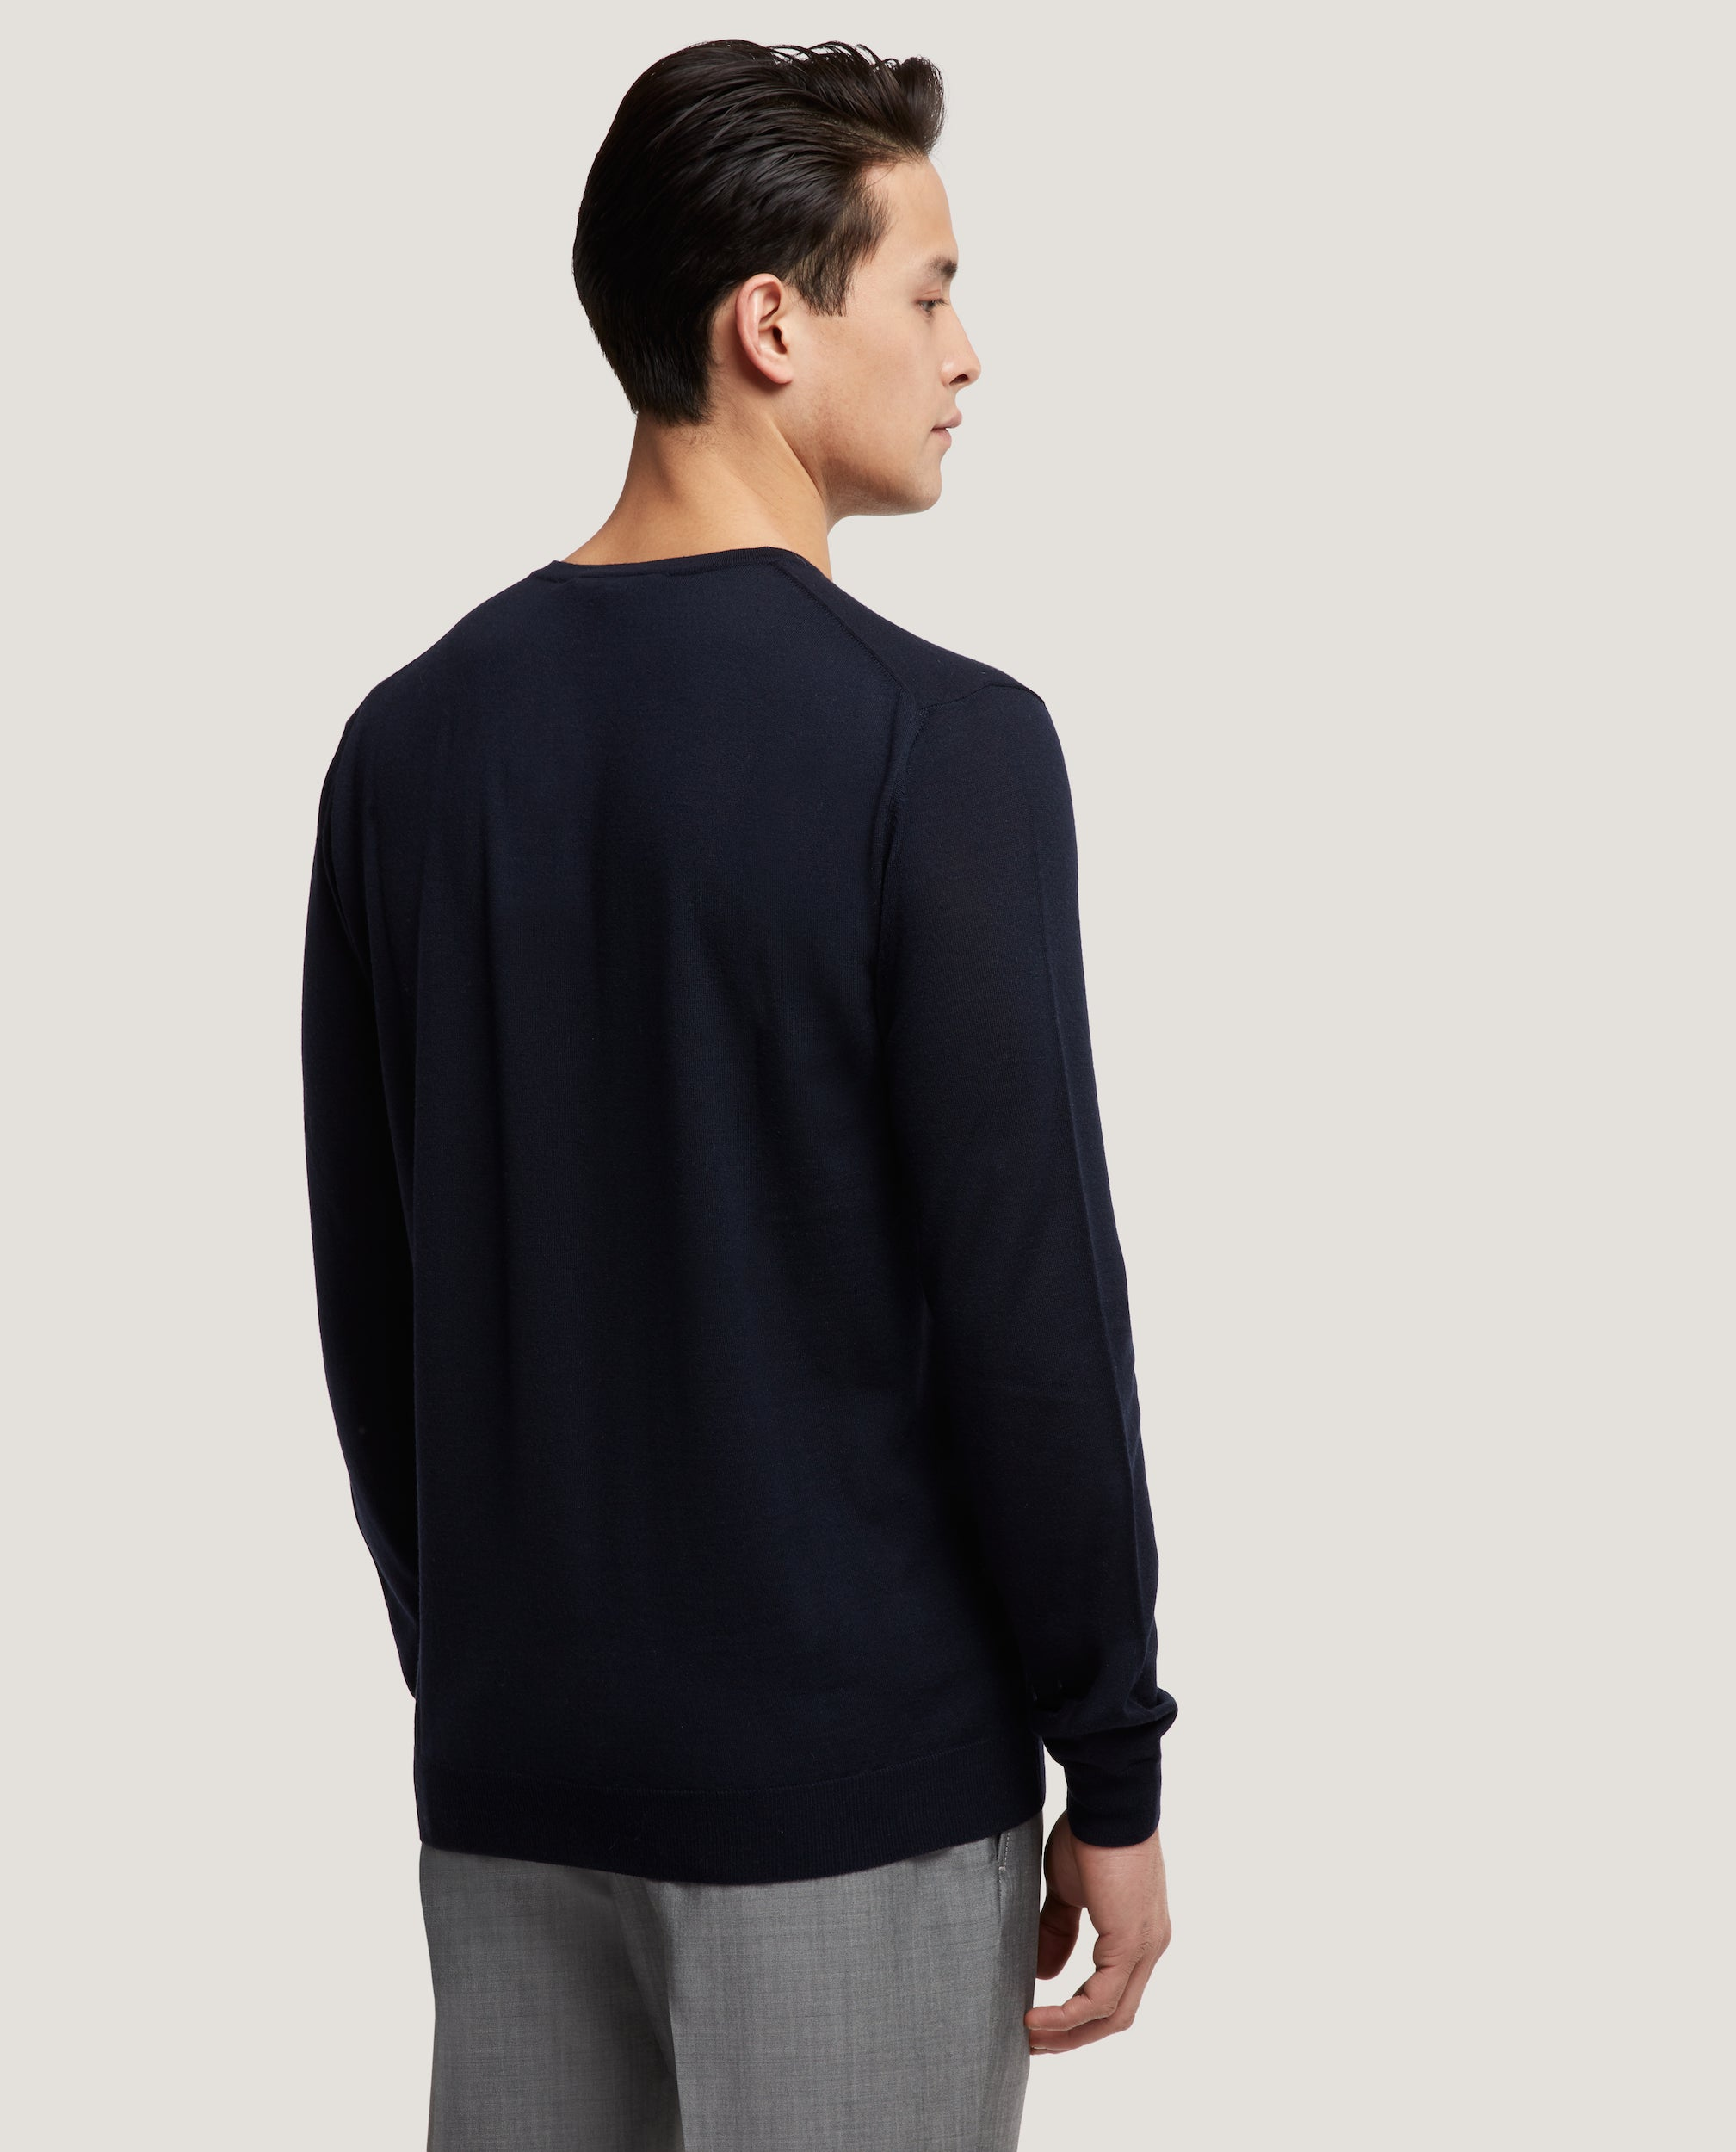 PAOL Merino wool sweater | Night Blue